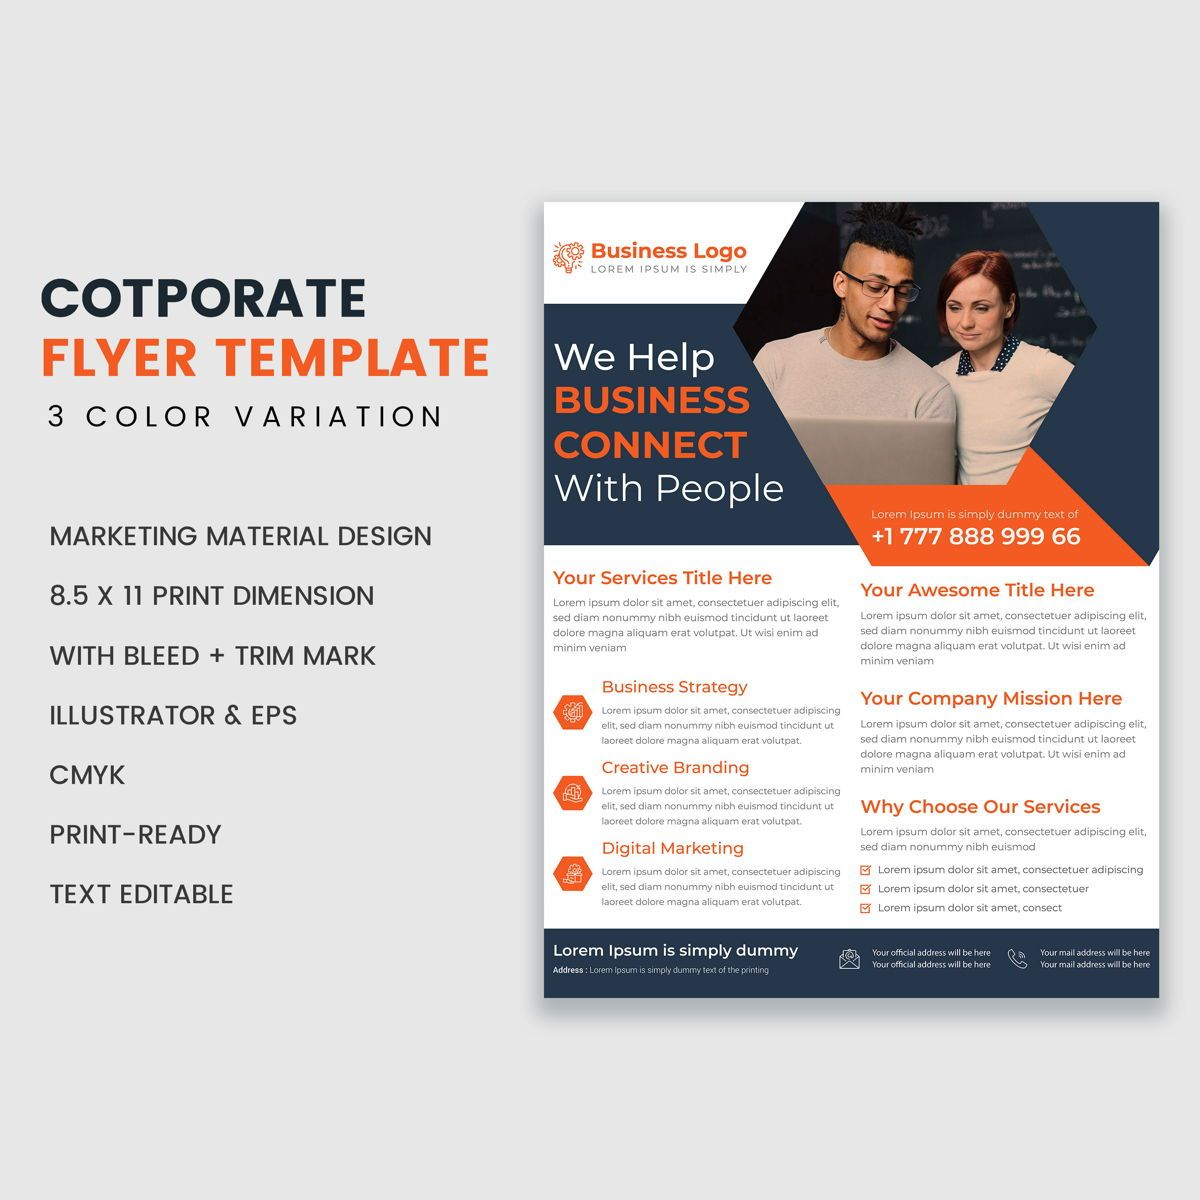 Minimal Corporate Industrial Flyer Template Design For Professional Business Services, 08938, Abstract/Textures — PoweredTemplate.com